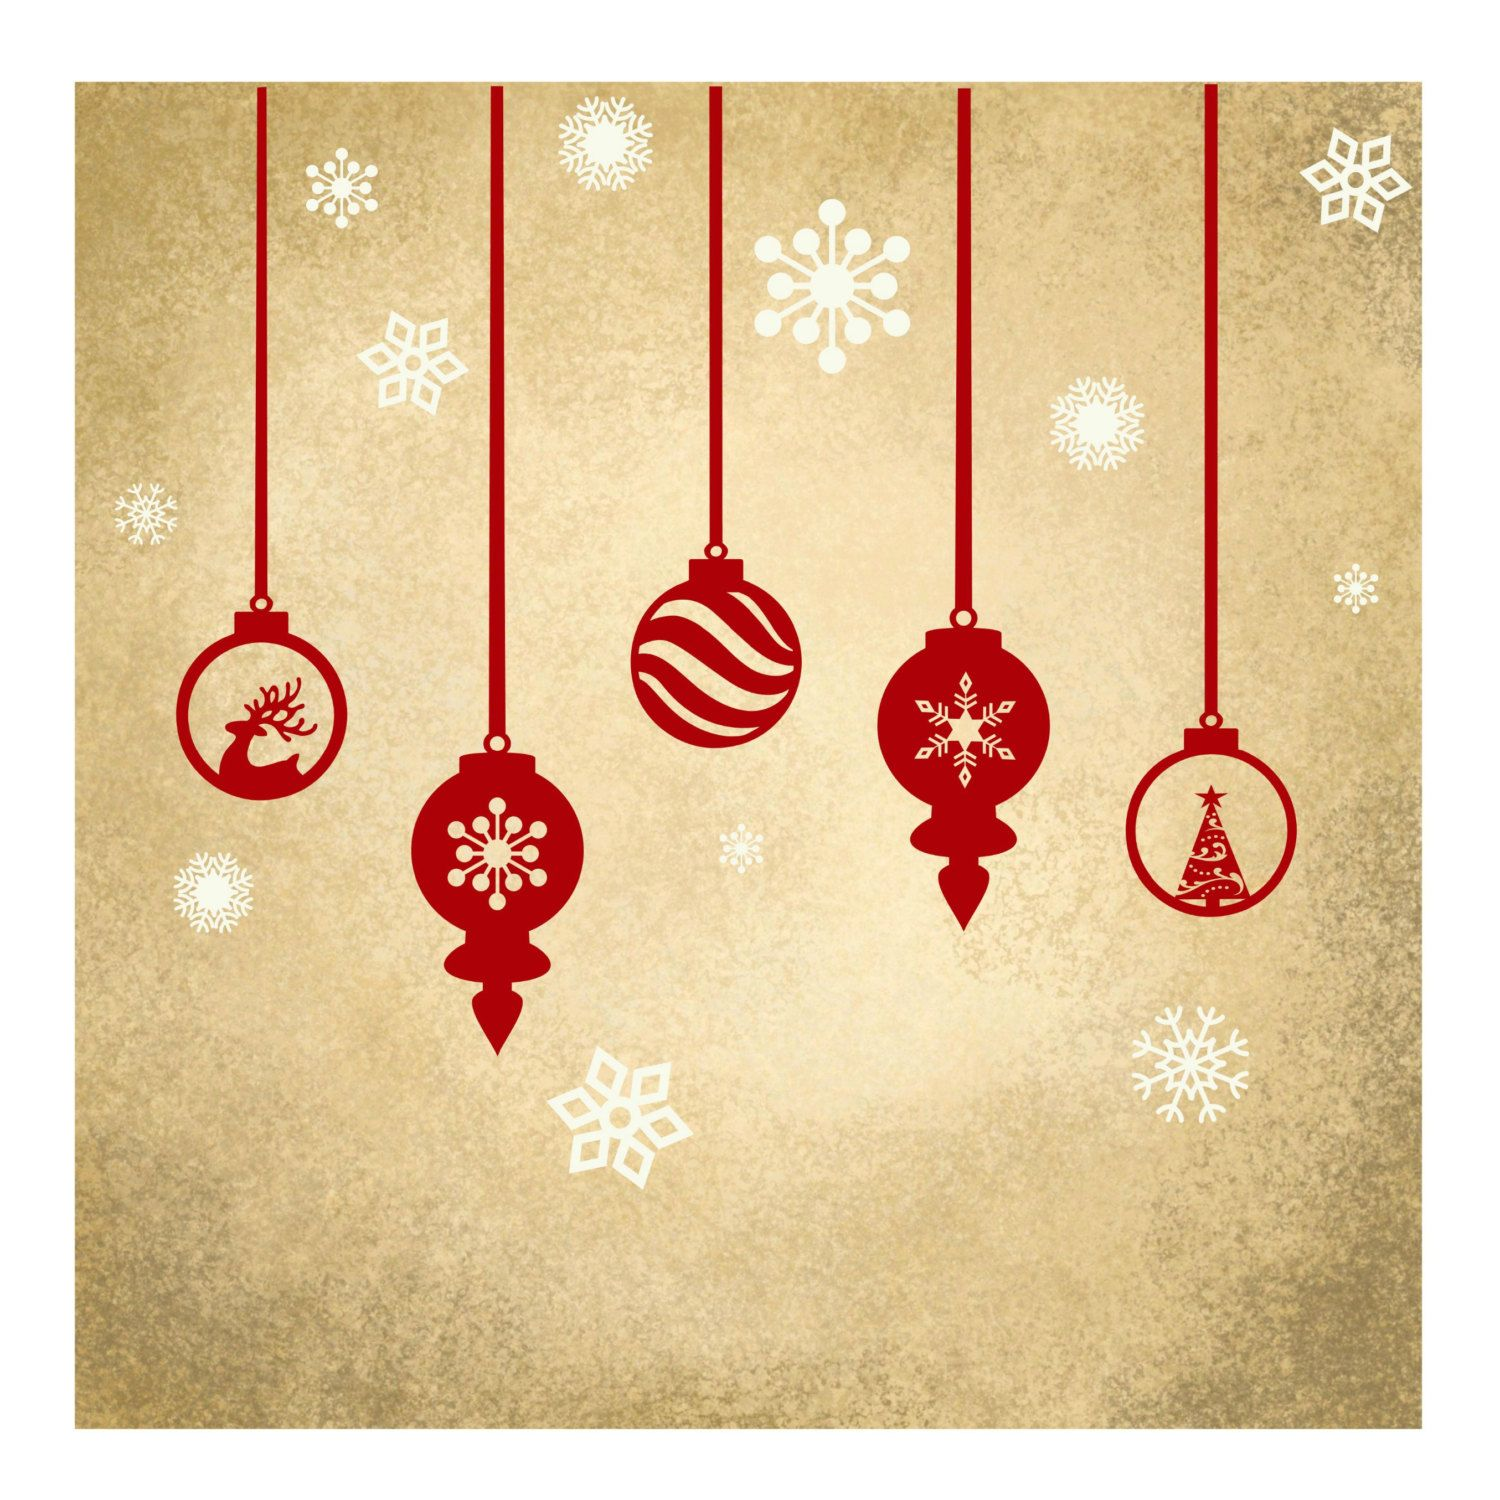 Decorative Vinyl Christmas Ornaments with Snowflakes: for Windows ...